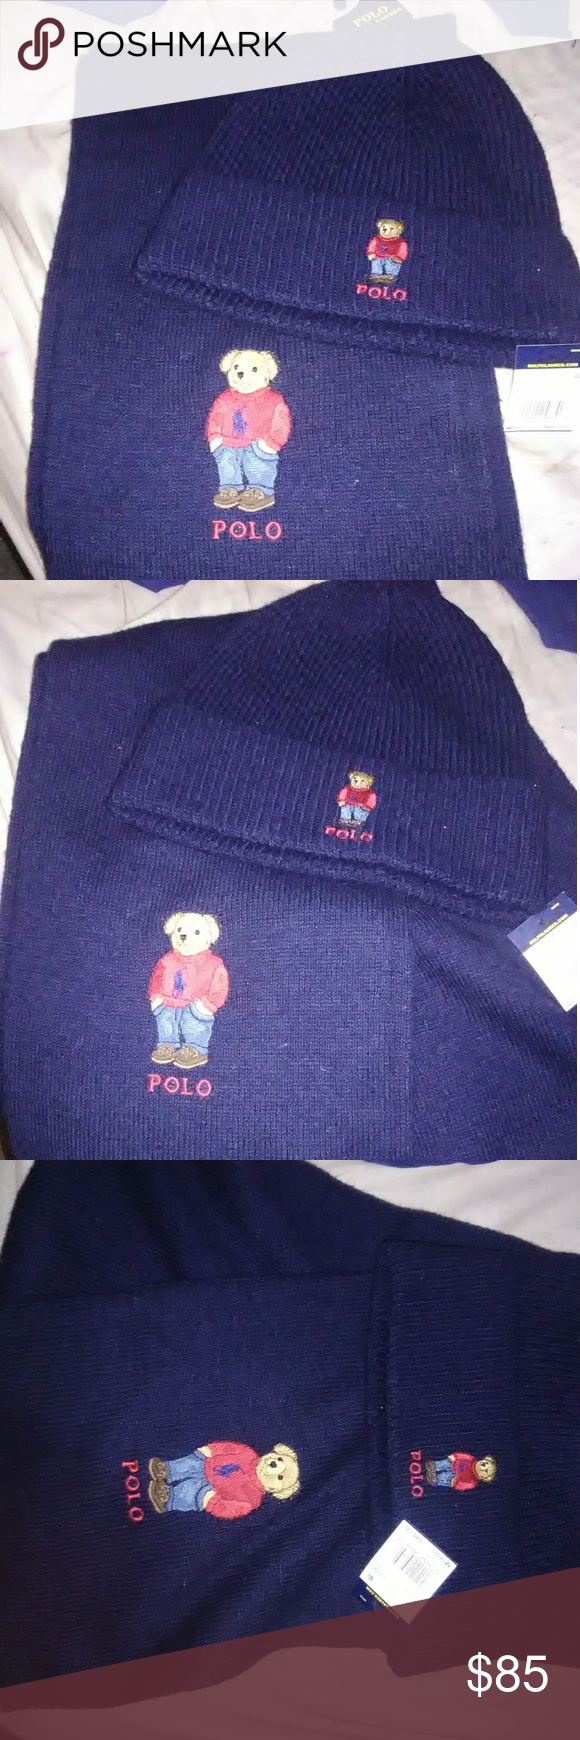 4eec76a1a470 Polo Ralph Lauren set of hat   scarf Bear logo New New authentic with tags Polo  Ralph Lauren set of hat and scarf Navy blue with embroided polo bear  dressed ...